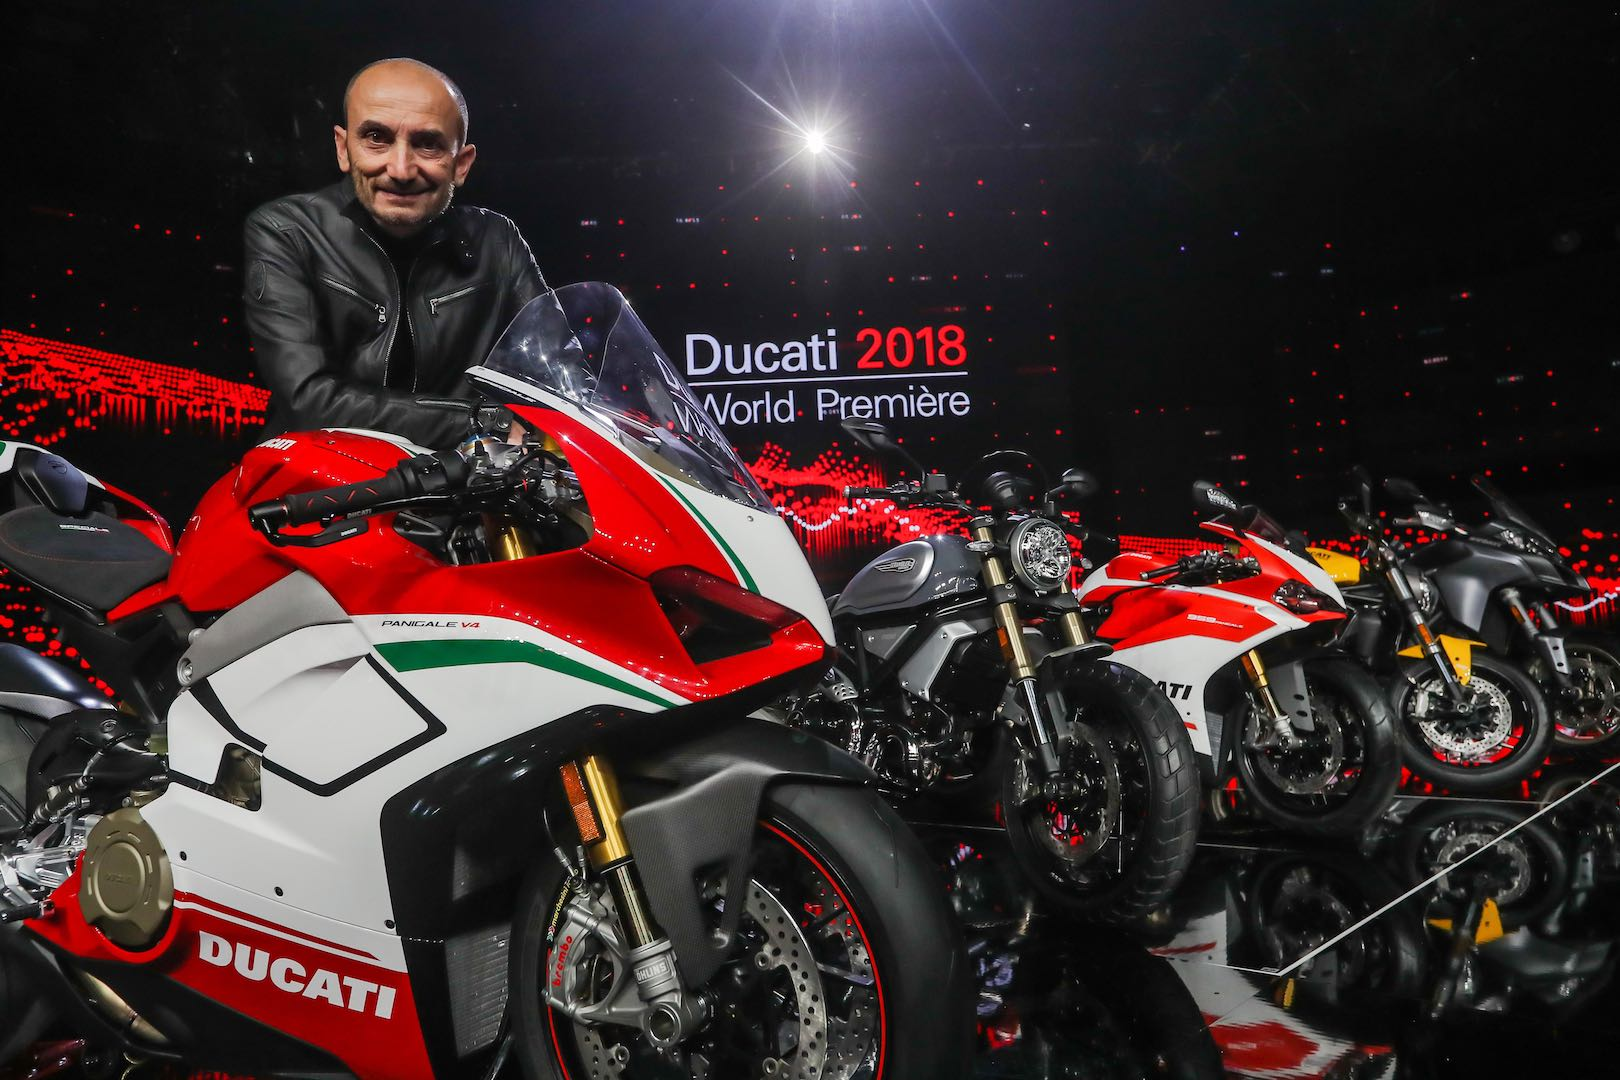 2017 Ducati Sales Report: Panigale V4 and Claudio Domenicali